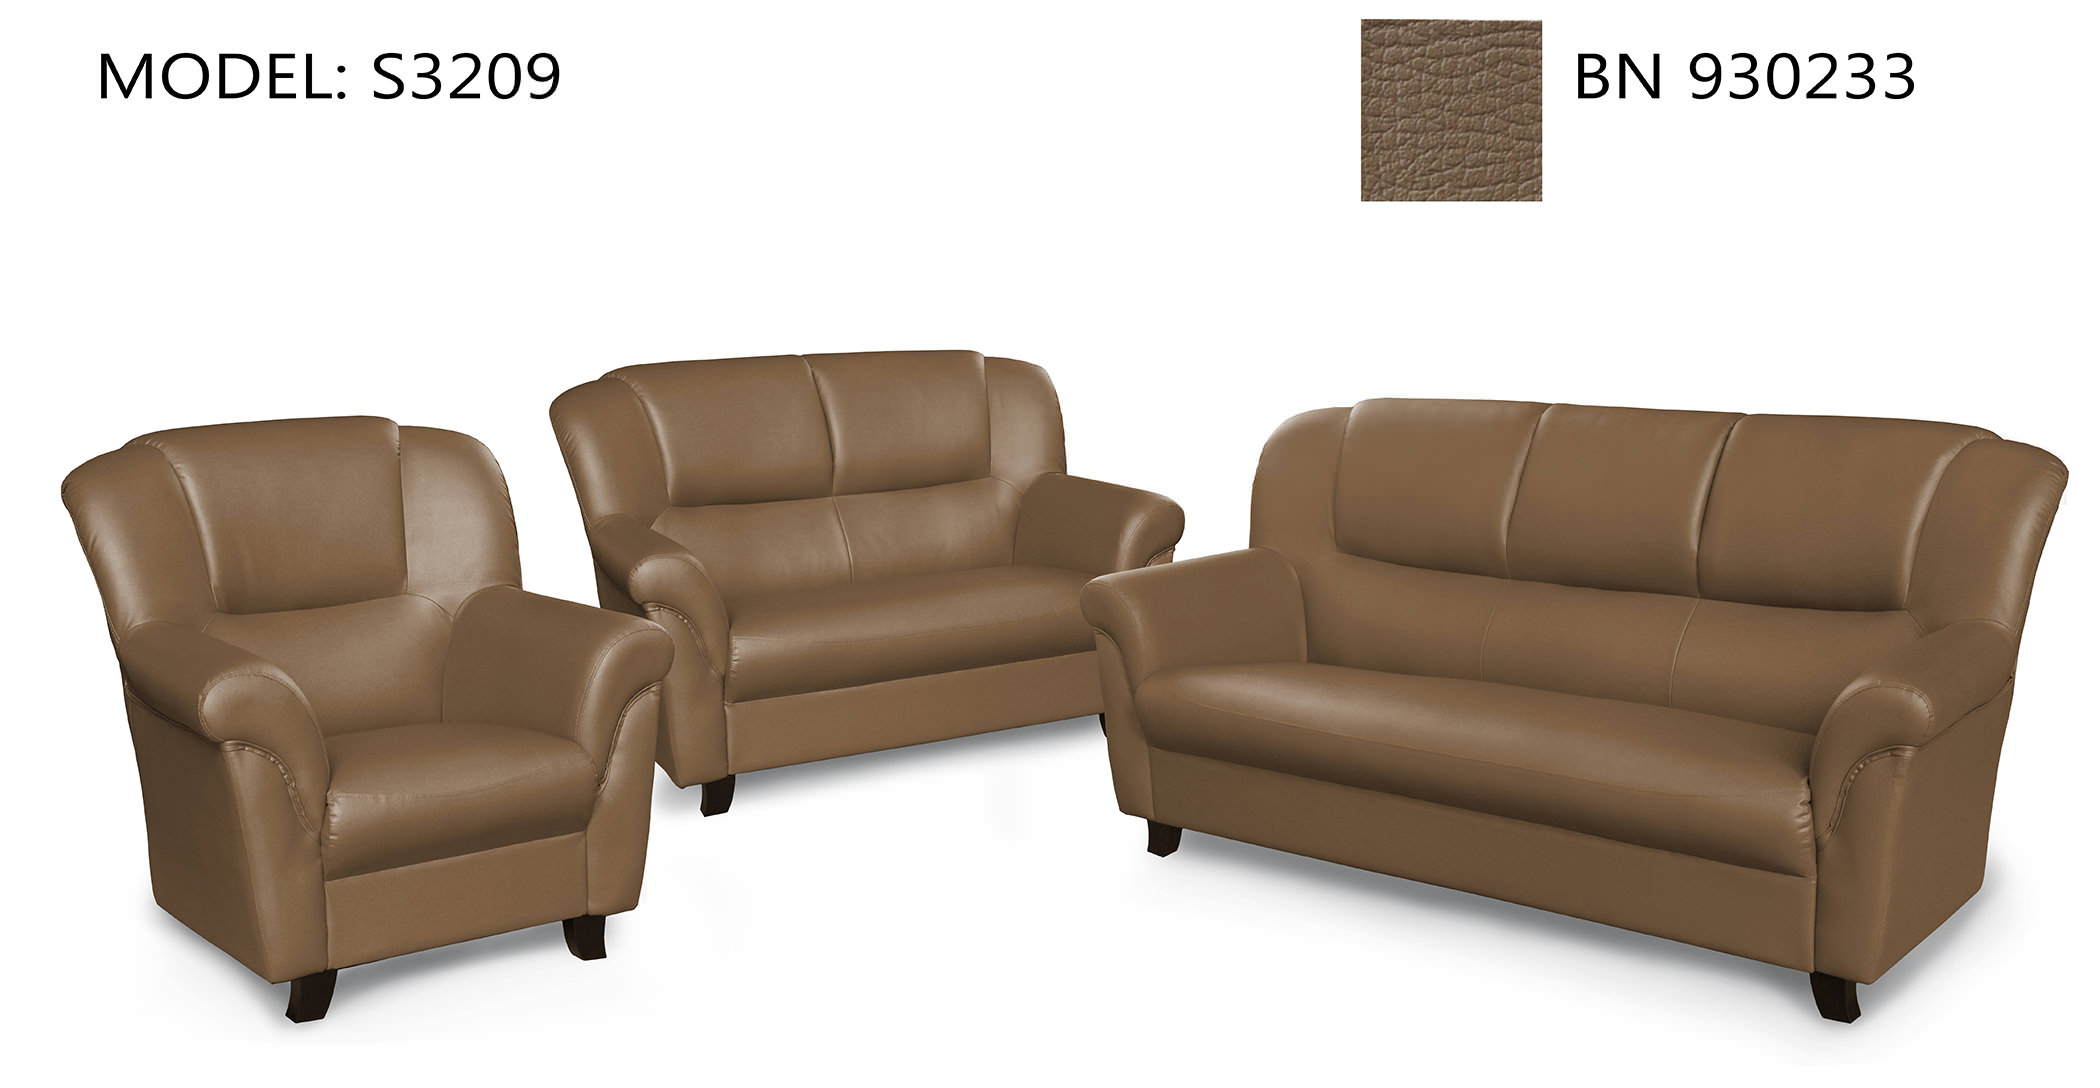 Pvc sofa home the honoroak for Sofa chair malaysia